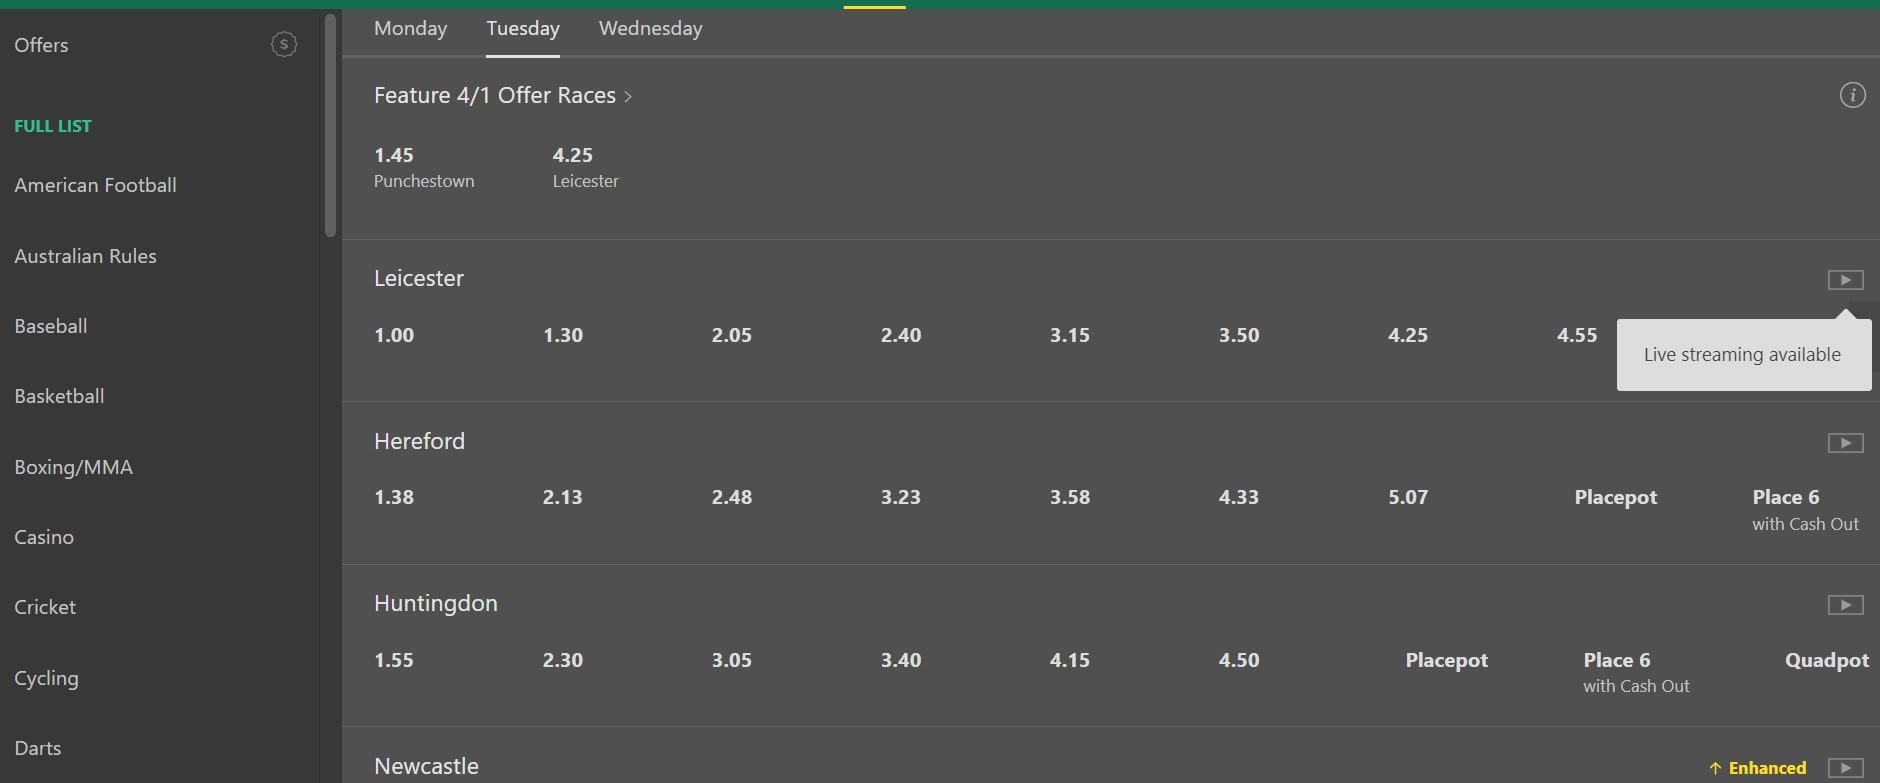 Bet365 live horse racing streaming sites